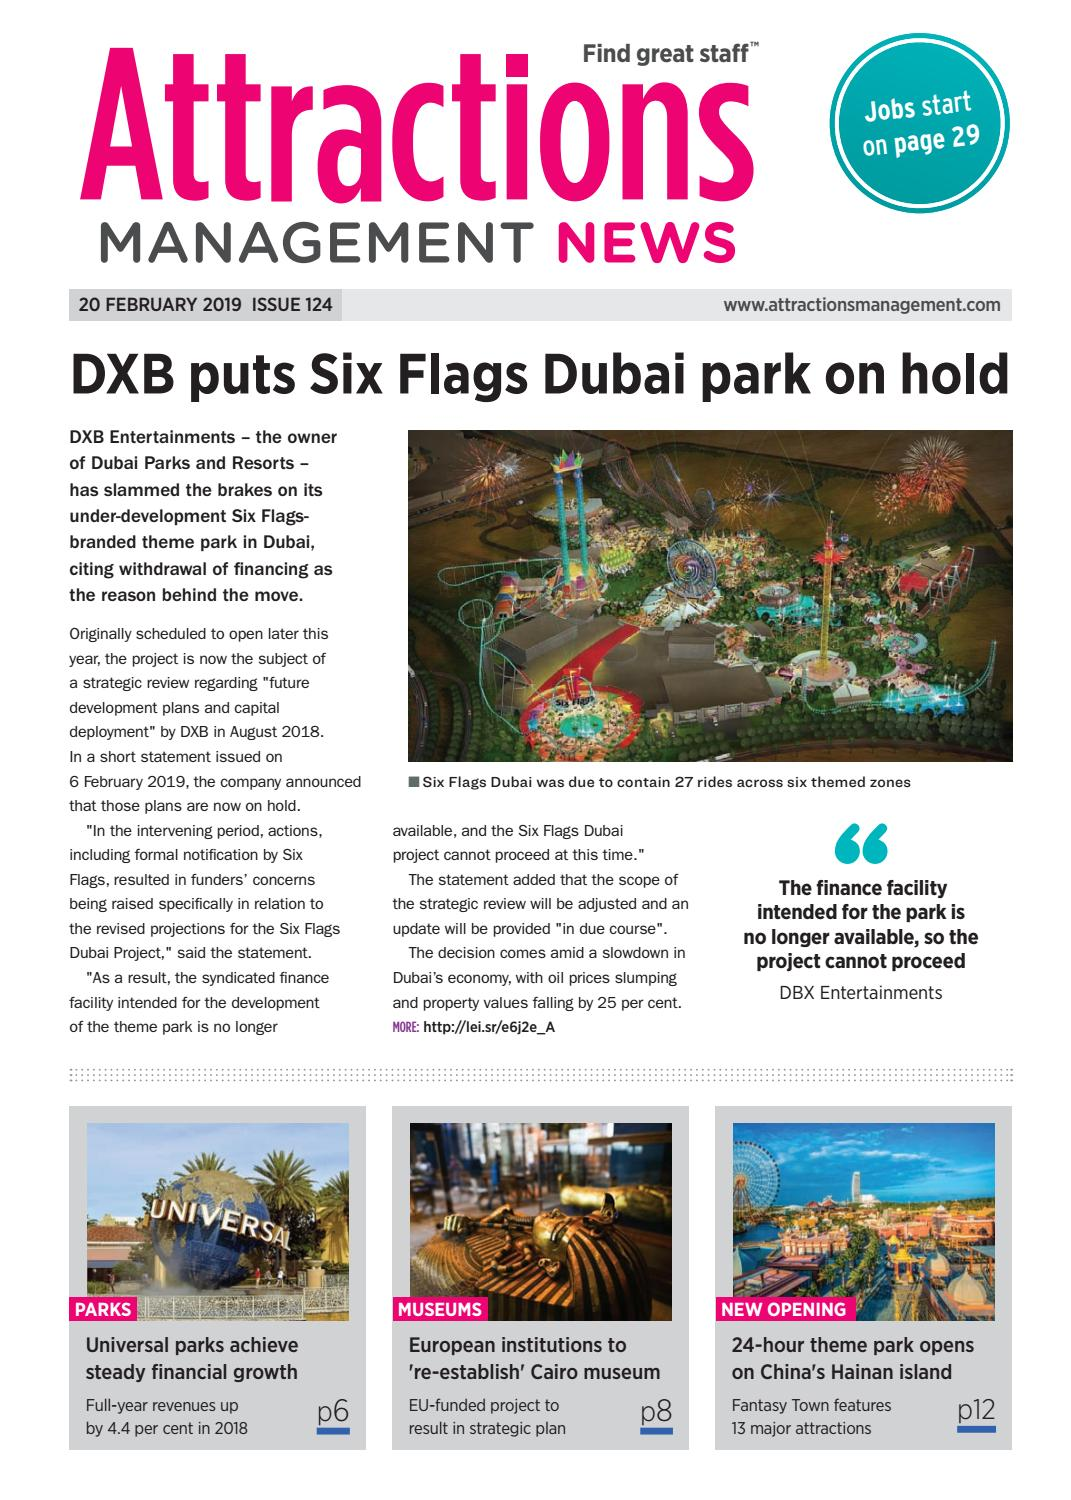 Attractions Management News 20th February 2019 issue 124 by Leisure